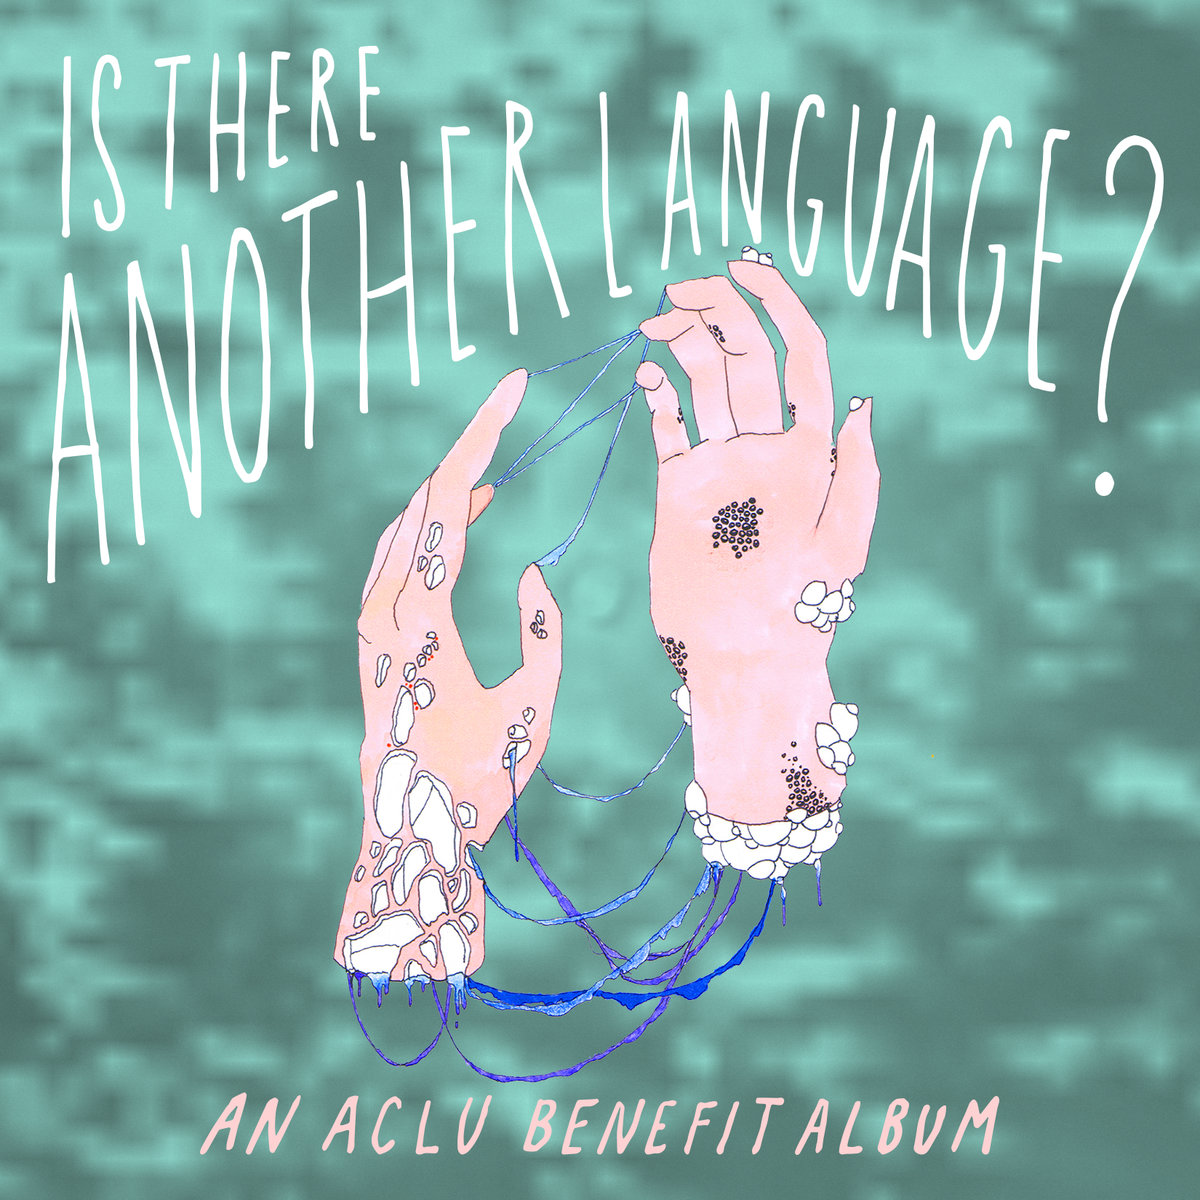 ACLU benefit album - Is There Another Language?